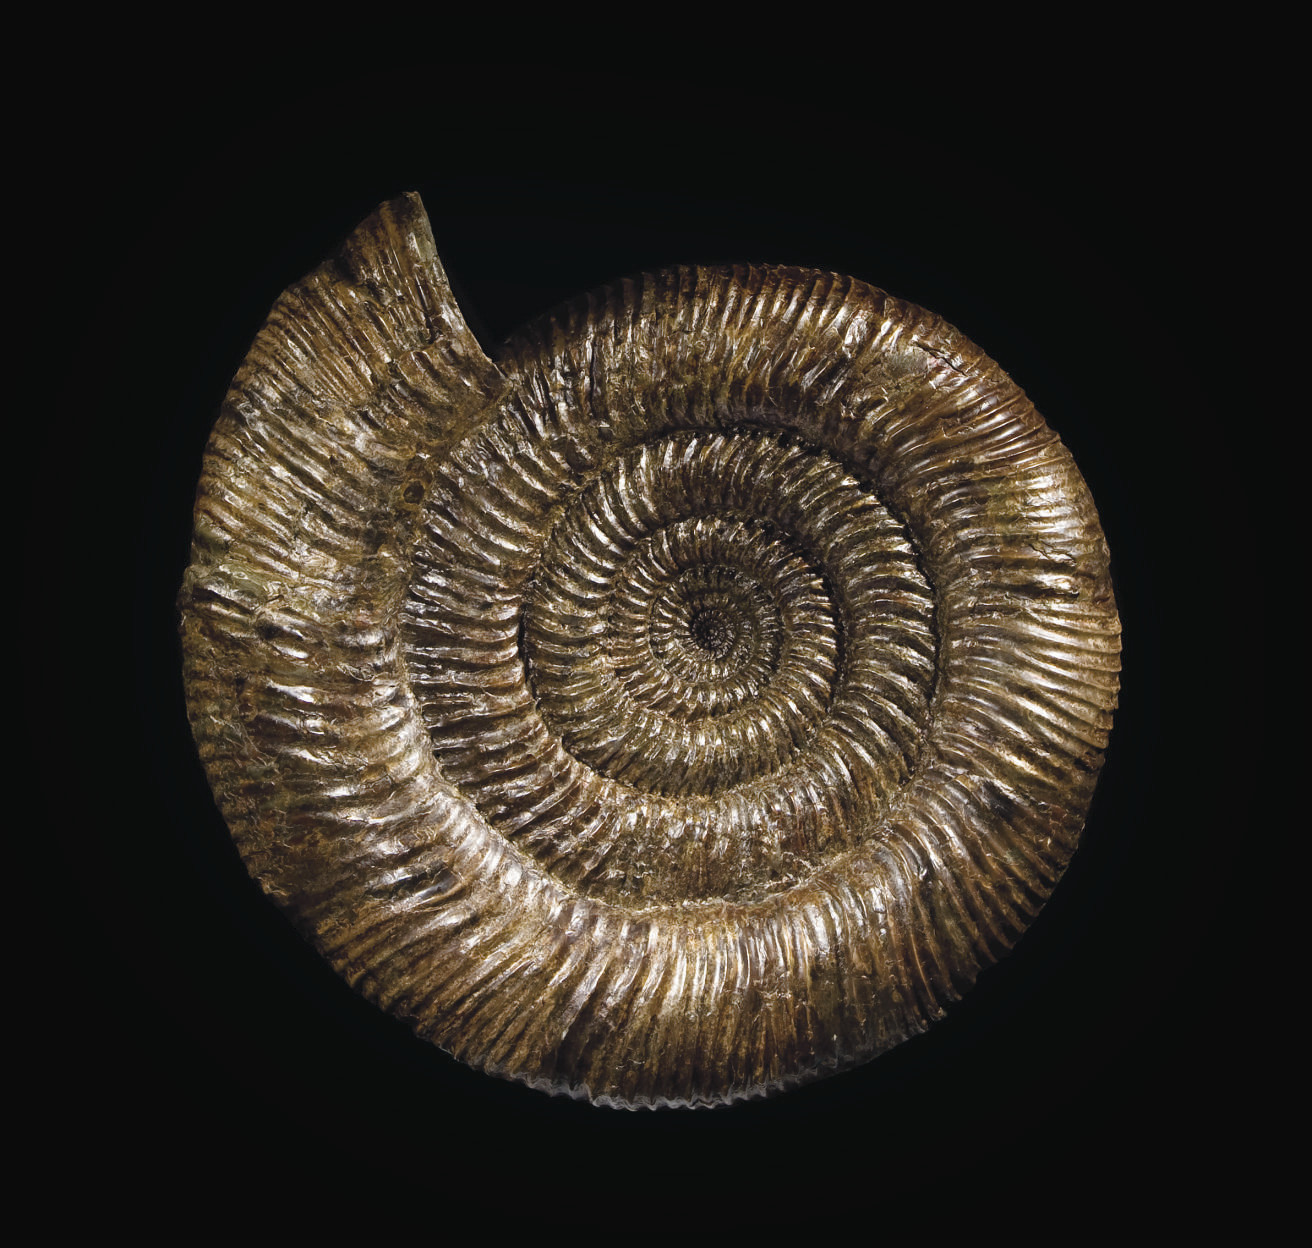 AMMONITE SPEETONICERAS